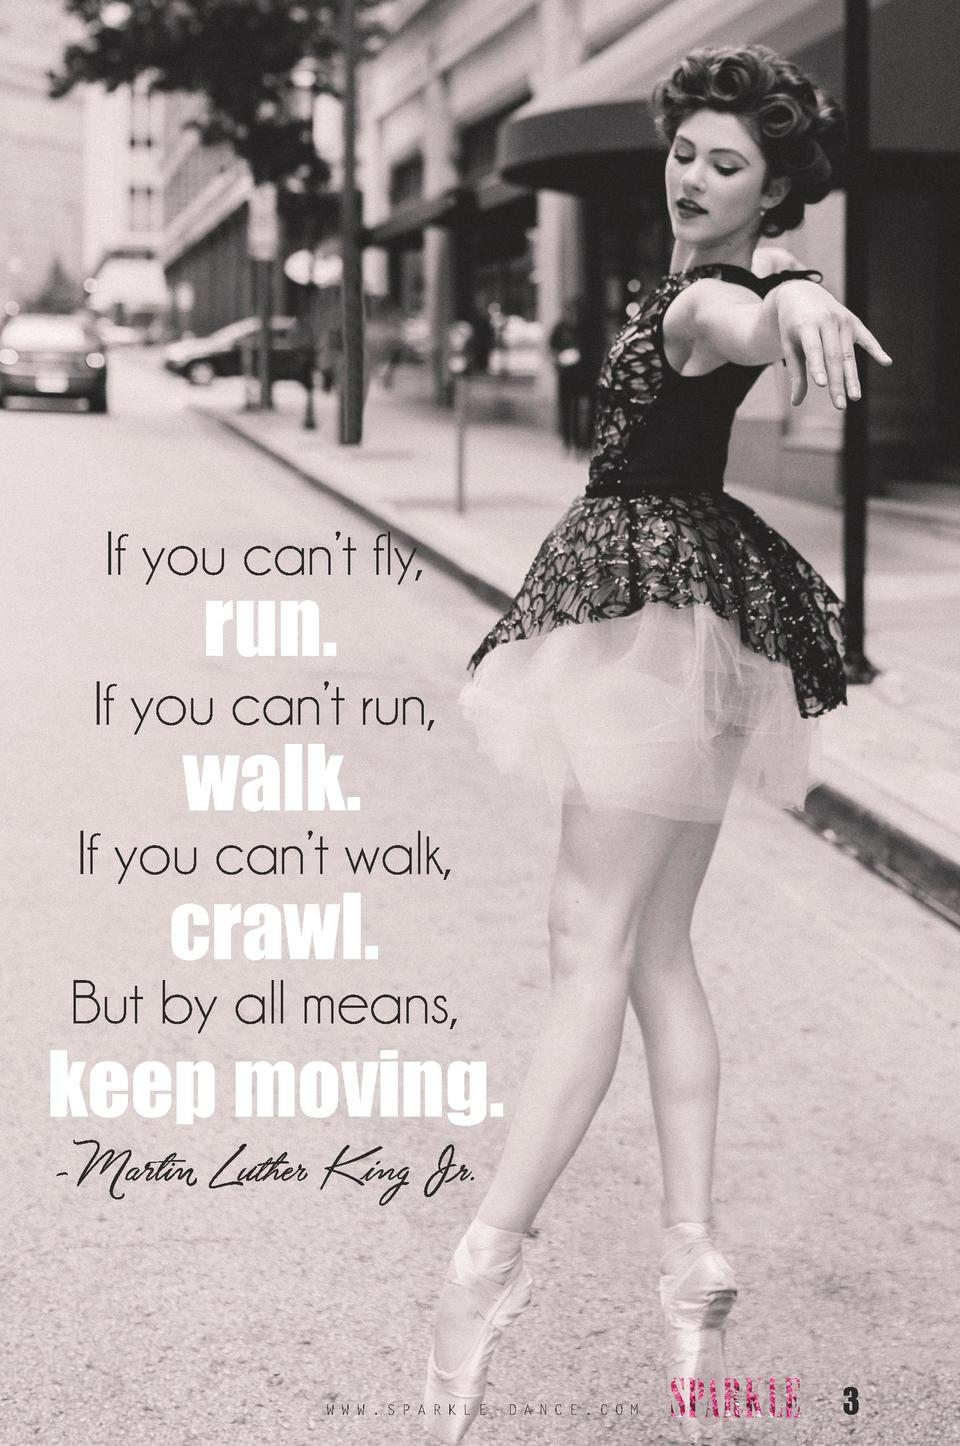 If you can   t fly,  run.  If you can   t run,  walk.  If you can   t walk,  crawl.  But by all means,  keep moving. -Mart...